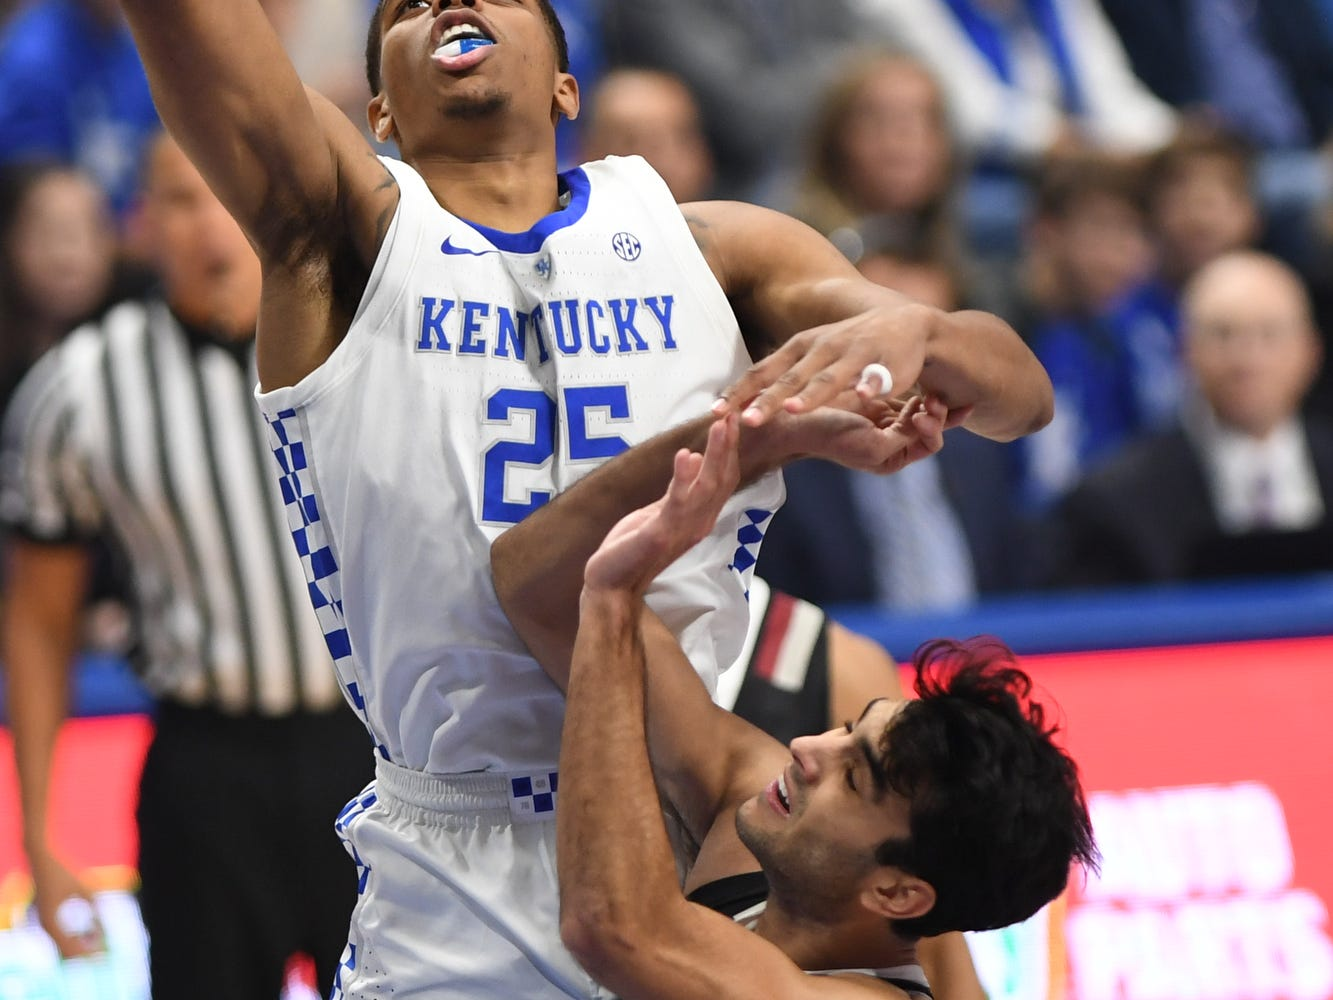 PJ Washington lays up the ball during the University of Kentucky basketball game against Indiana University of Pennsylvania at Rupp Arena on Friday, Nov. 2, 2018.